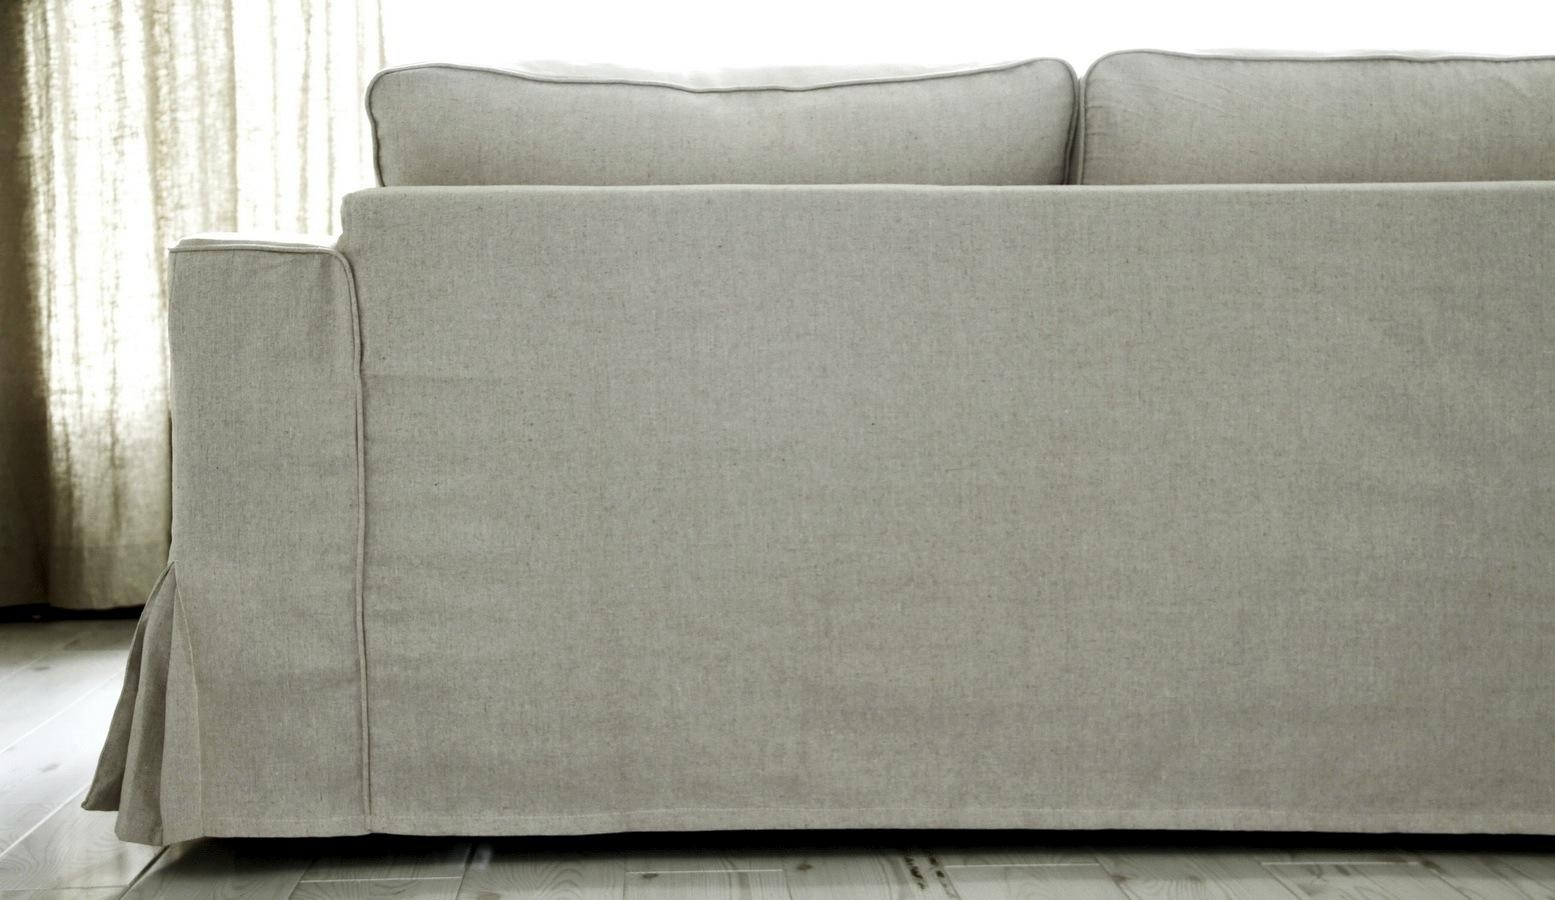 Furniture: Update Your Living Room With Best Sofa Slipcover Design Pertaining To 3 Piece Sofa Slipcovers (Image 11 of 20)